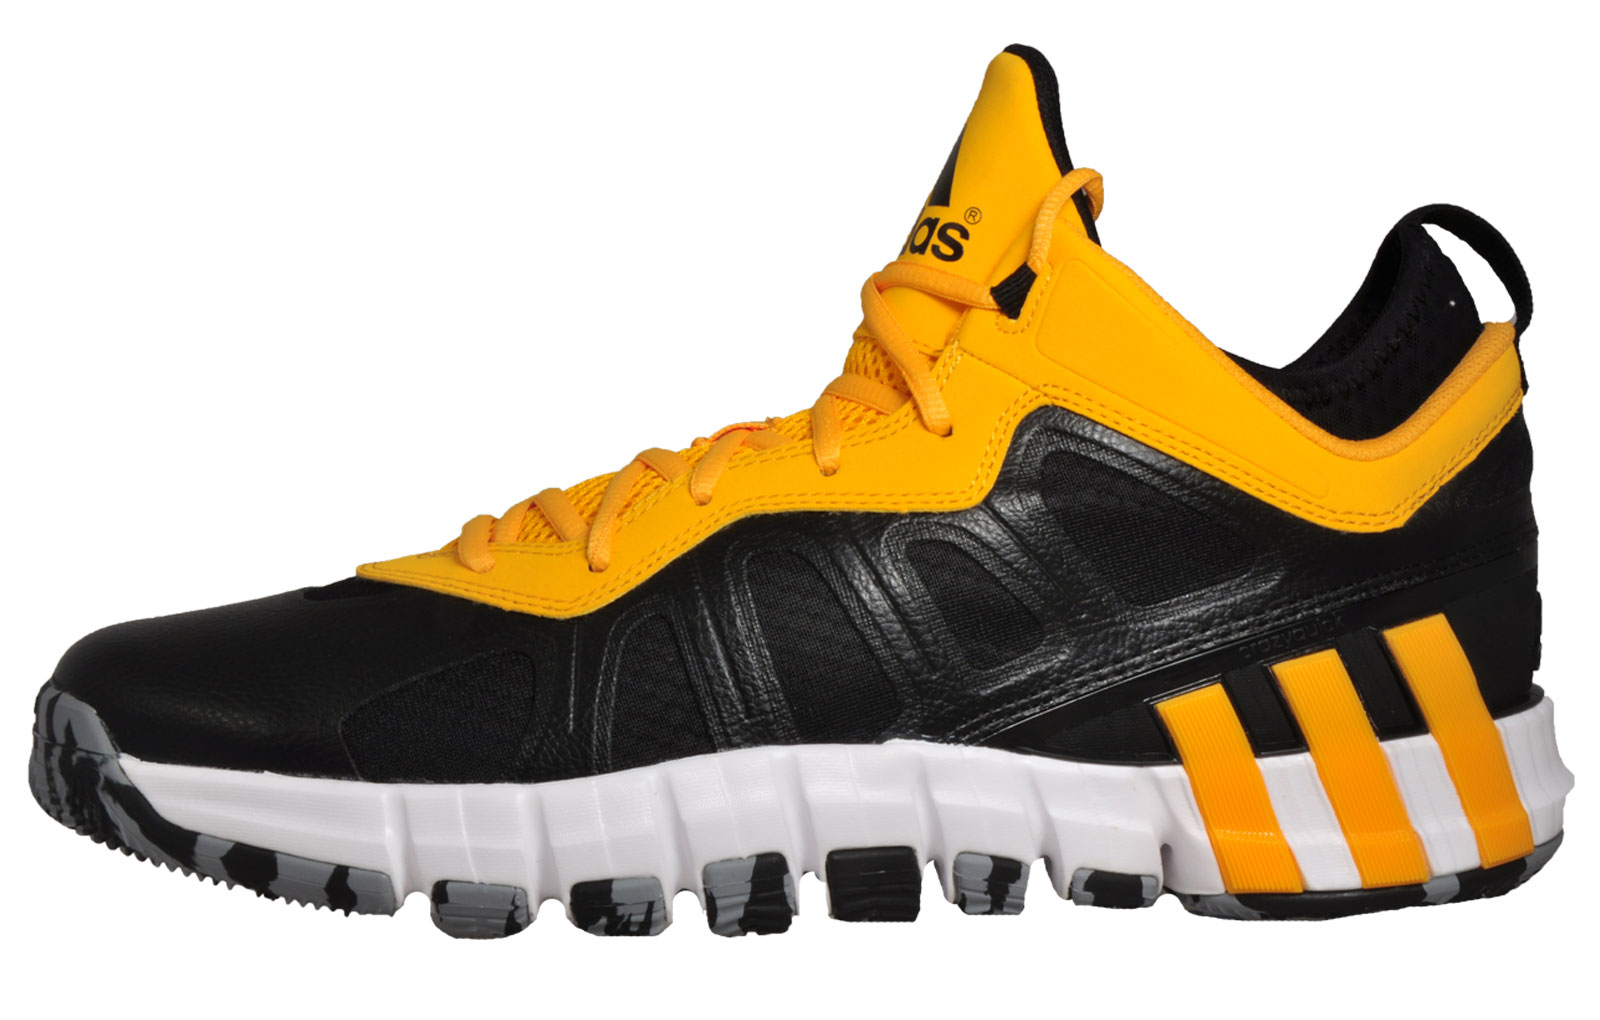 Adidas Crazyquick 2 5 Low Jeremy Lin 17 Mens Basketball Shoes Black Yellow